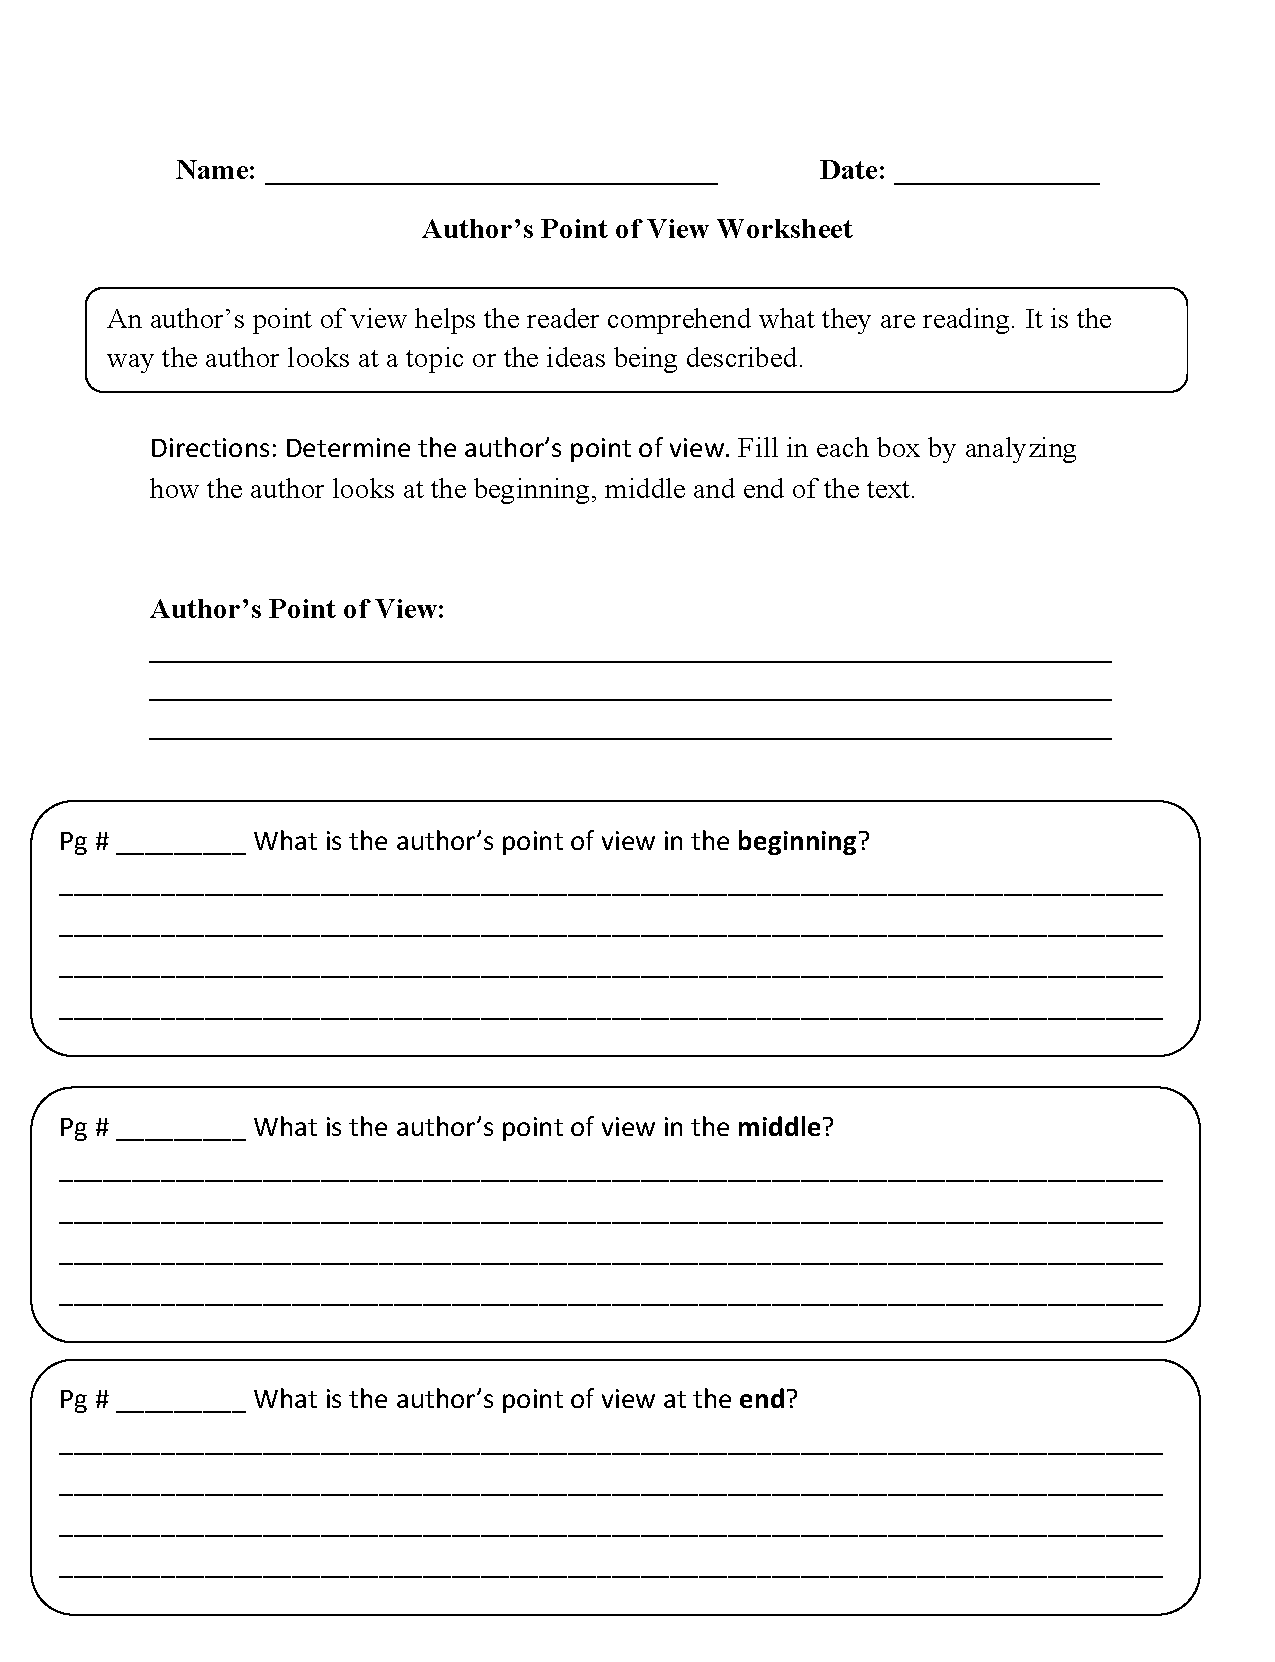 Weirdmailus  Wonderful Englishlinxcom  Point Of View Worksheets With Licious Point Of View Worksheets With Beauteous First Grade Math Worksheets Free Printable Also Consolidate Excel Worksheets Into One In Addition Vba Save Worksheet And Cognitive Behavioral Therapy Anxiety Worksheets As Well As Identify The Verb Worksheet Additionally Telling Time To The Nearest  Minutes Worksheets From Englishlinxcom With Weirdmailus  Licious Englishlinxcom  Point Of View Worksheets With Beauteous Point Of View Worksheets And Wonderful First Grade Math Worksheets Free Printable Also Consolidate Excel Worksheets Into One In Addition Vba Save Worksheet From Englishlinxcom